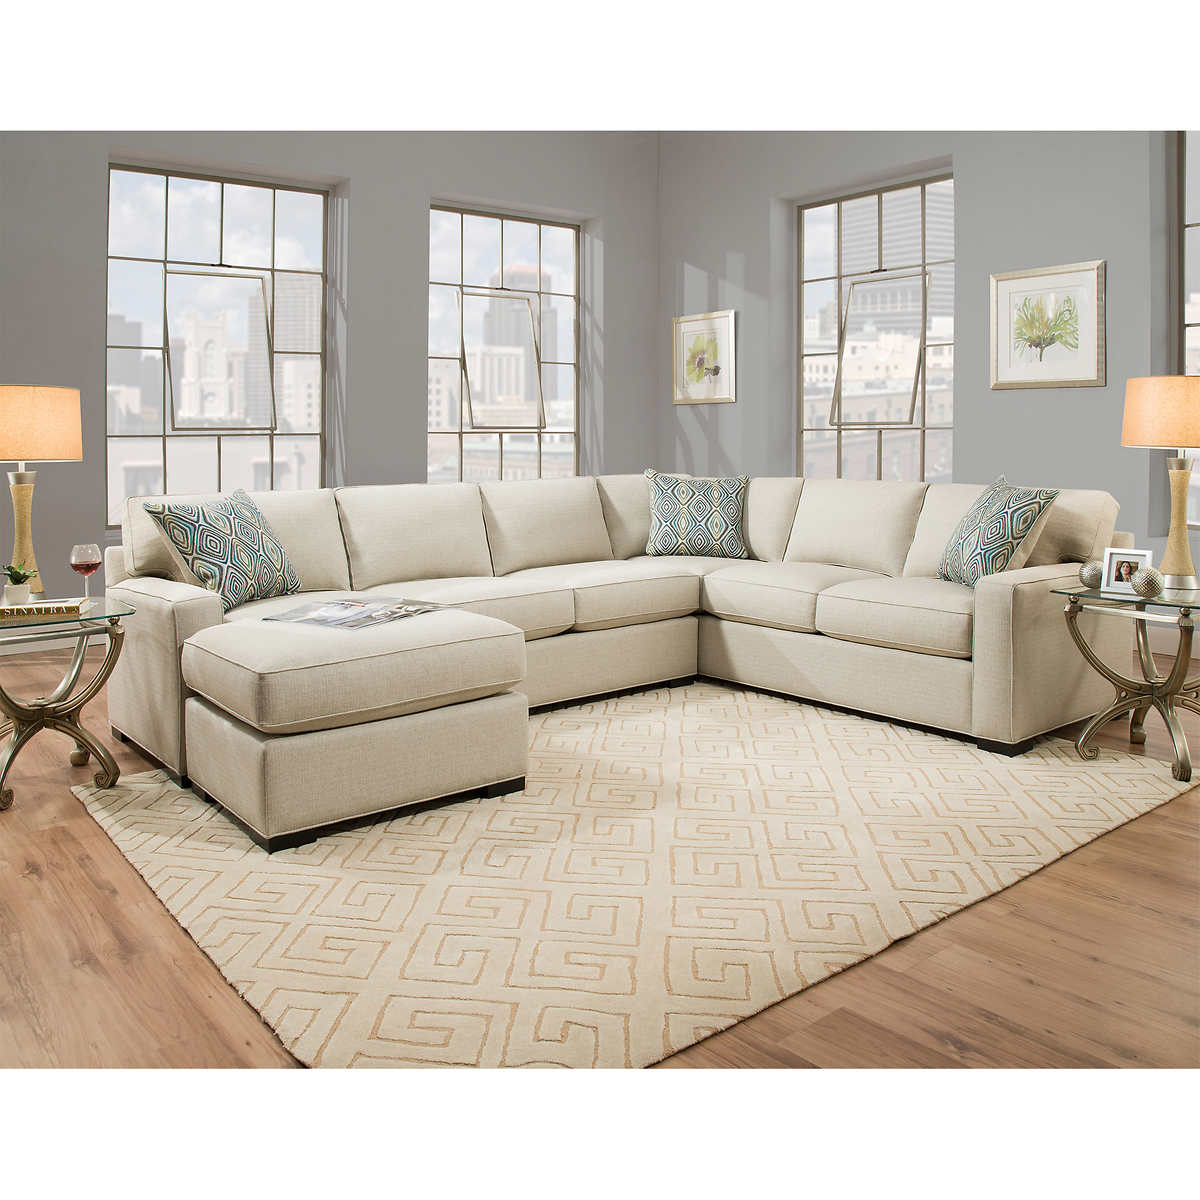 Costco Sectional Sofa Rooms